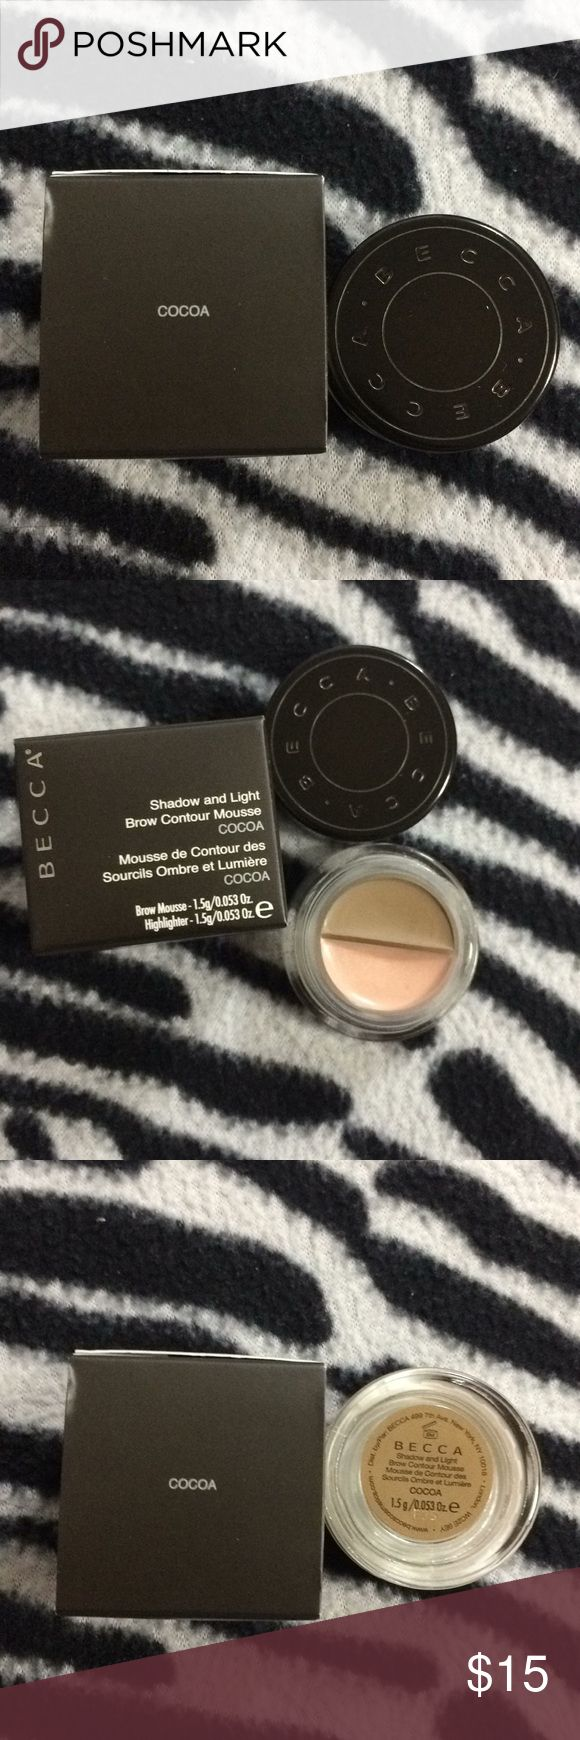 Becca Shadow and Light Brow Contour Mousse Brand New In Box. Just taken out of the box for pictures. BECCA Makeup Eyebrow Filler